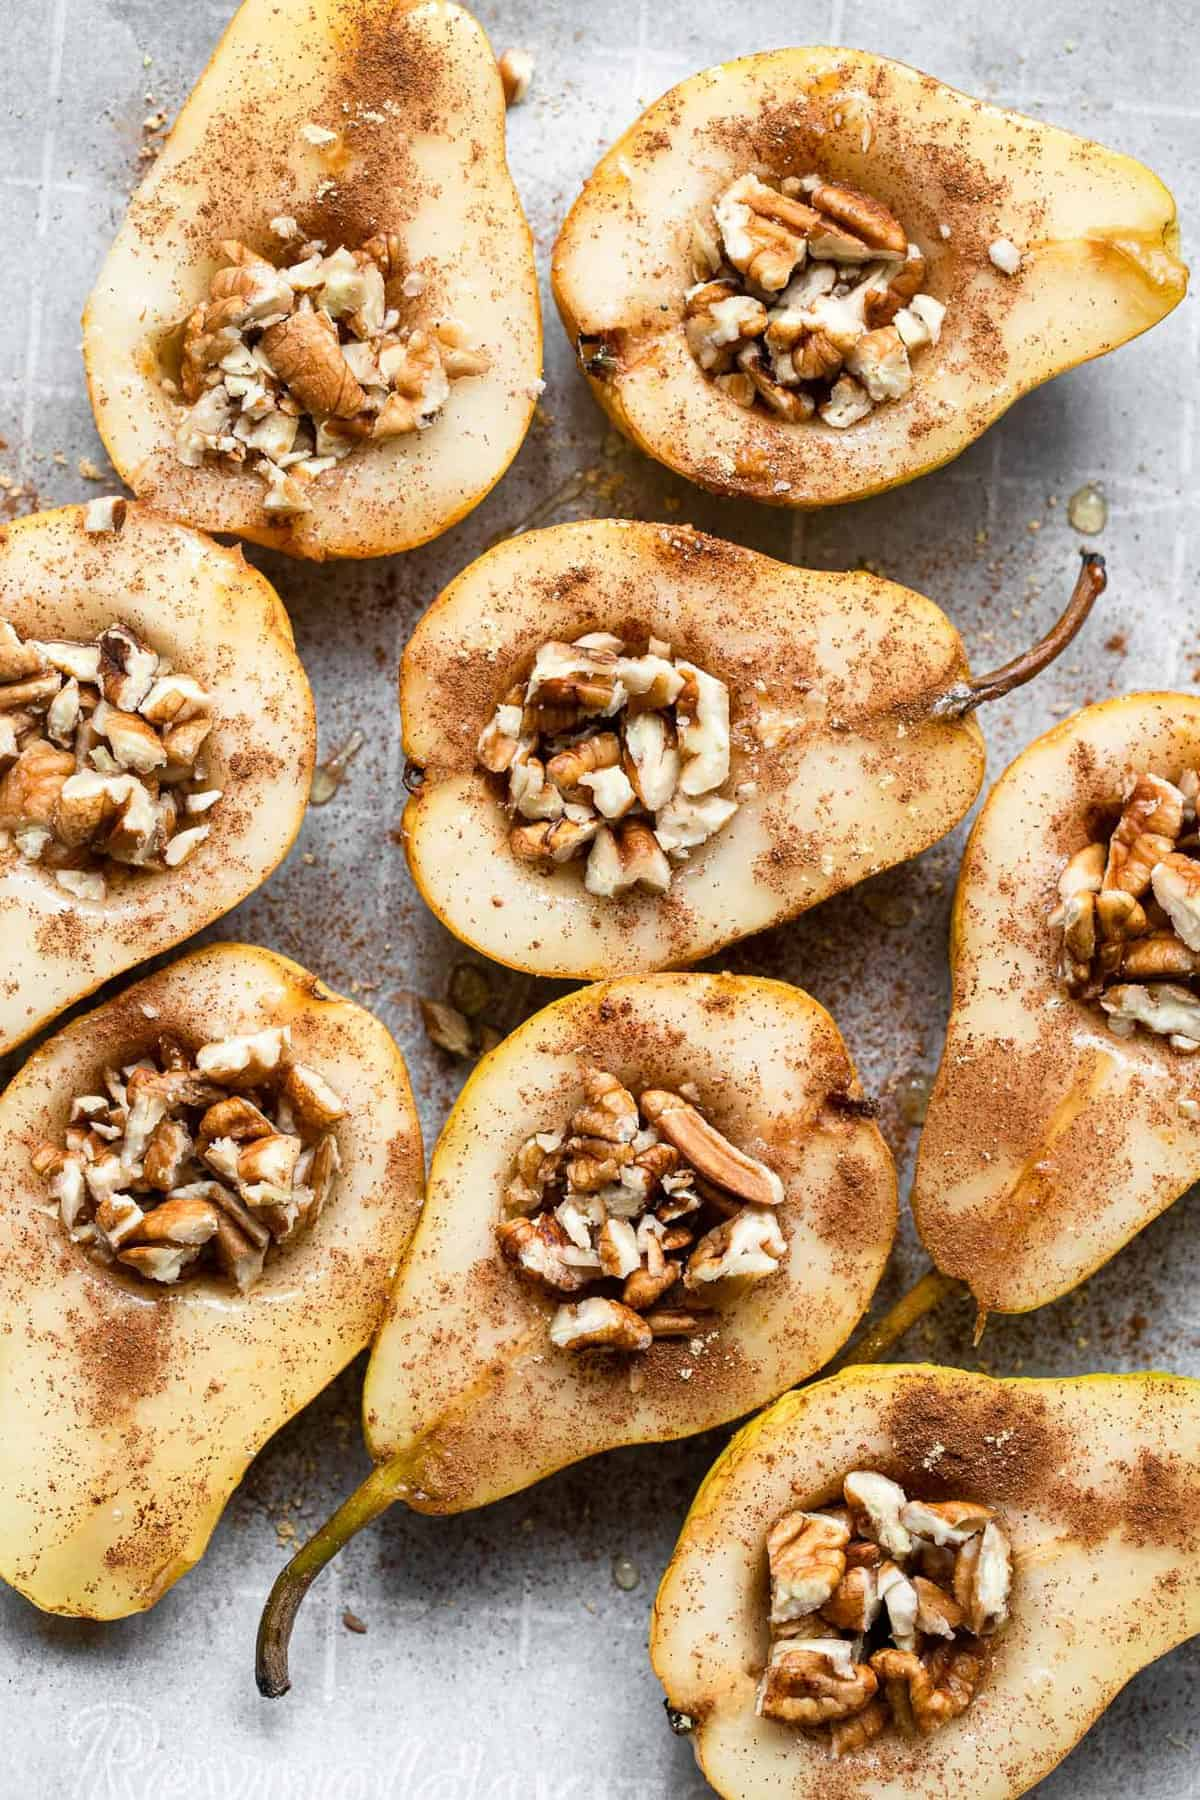 whole baked pears on a baking sheet